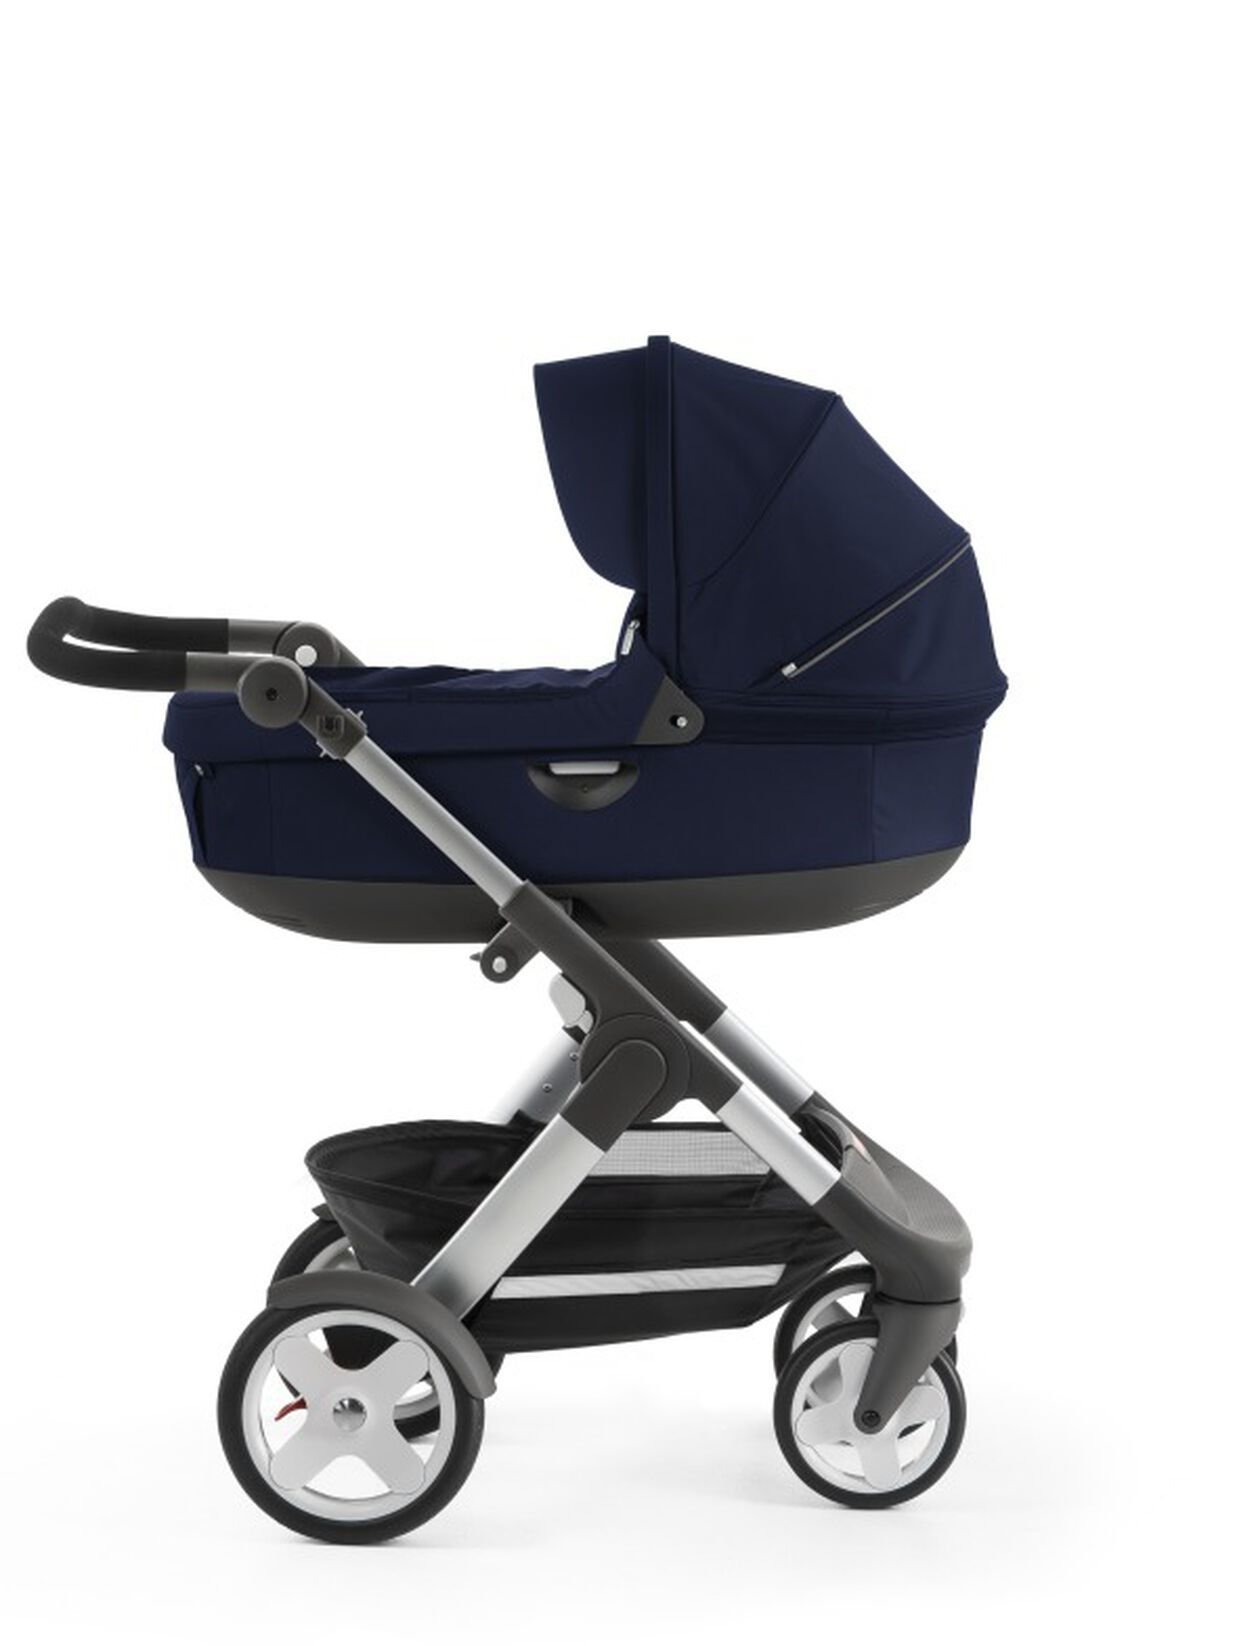 Stokke® Trailz™ with Stokke® Stroller Carry Cot, Deep Blue. Classic Wheels. view 1